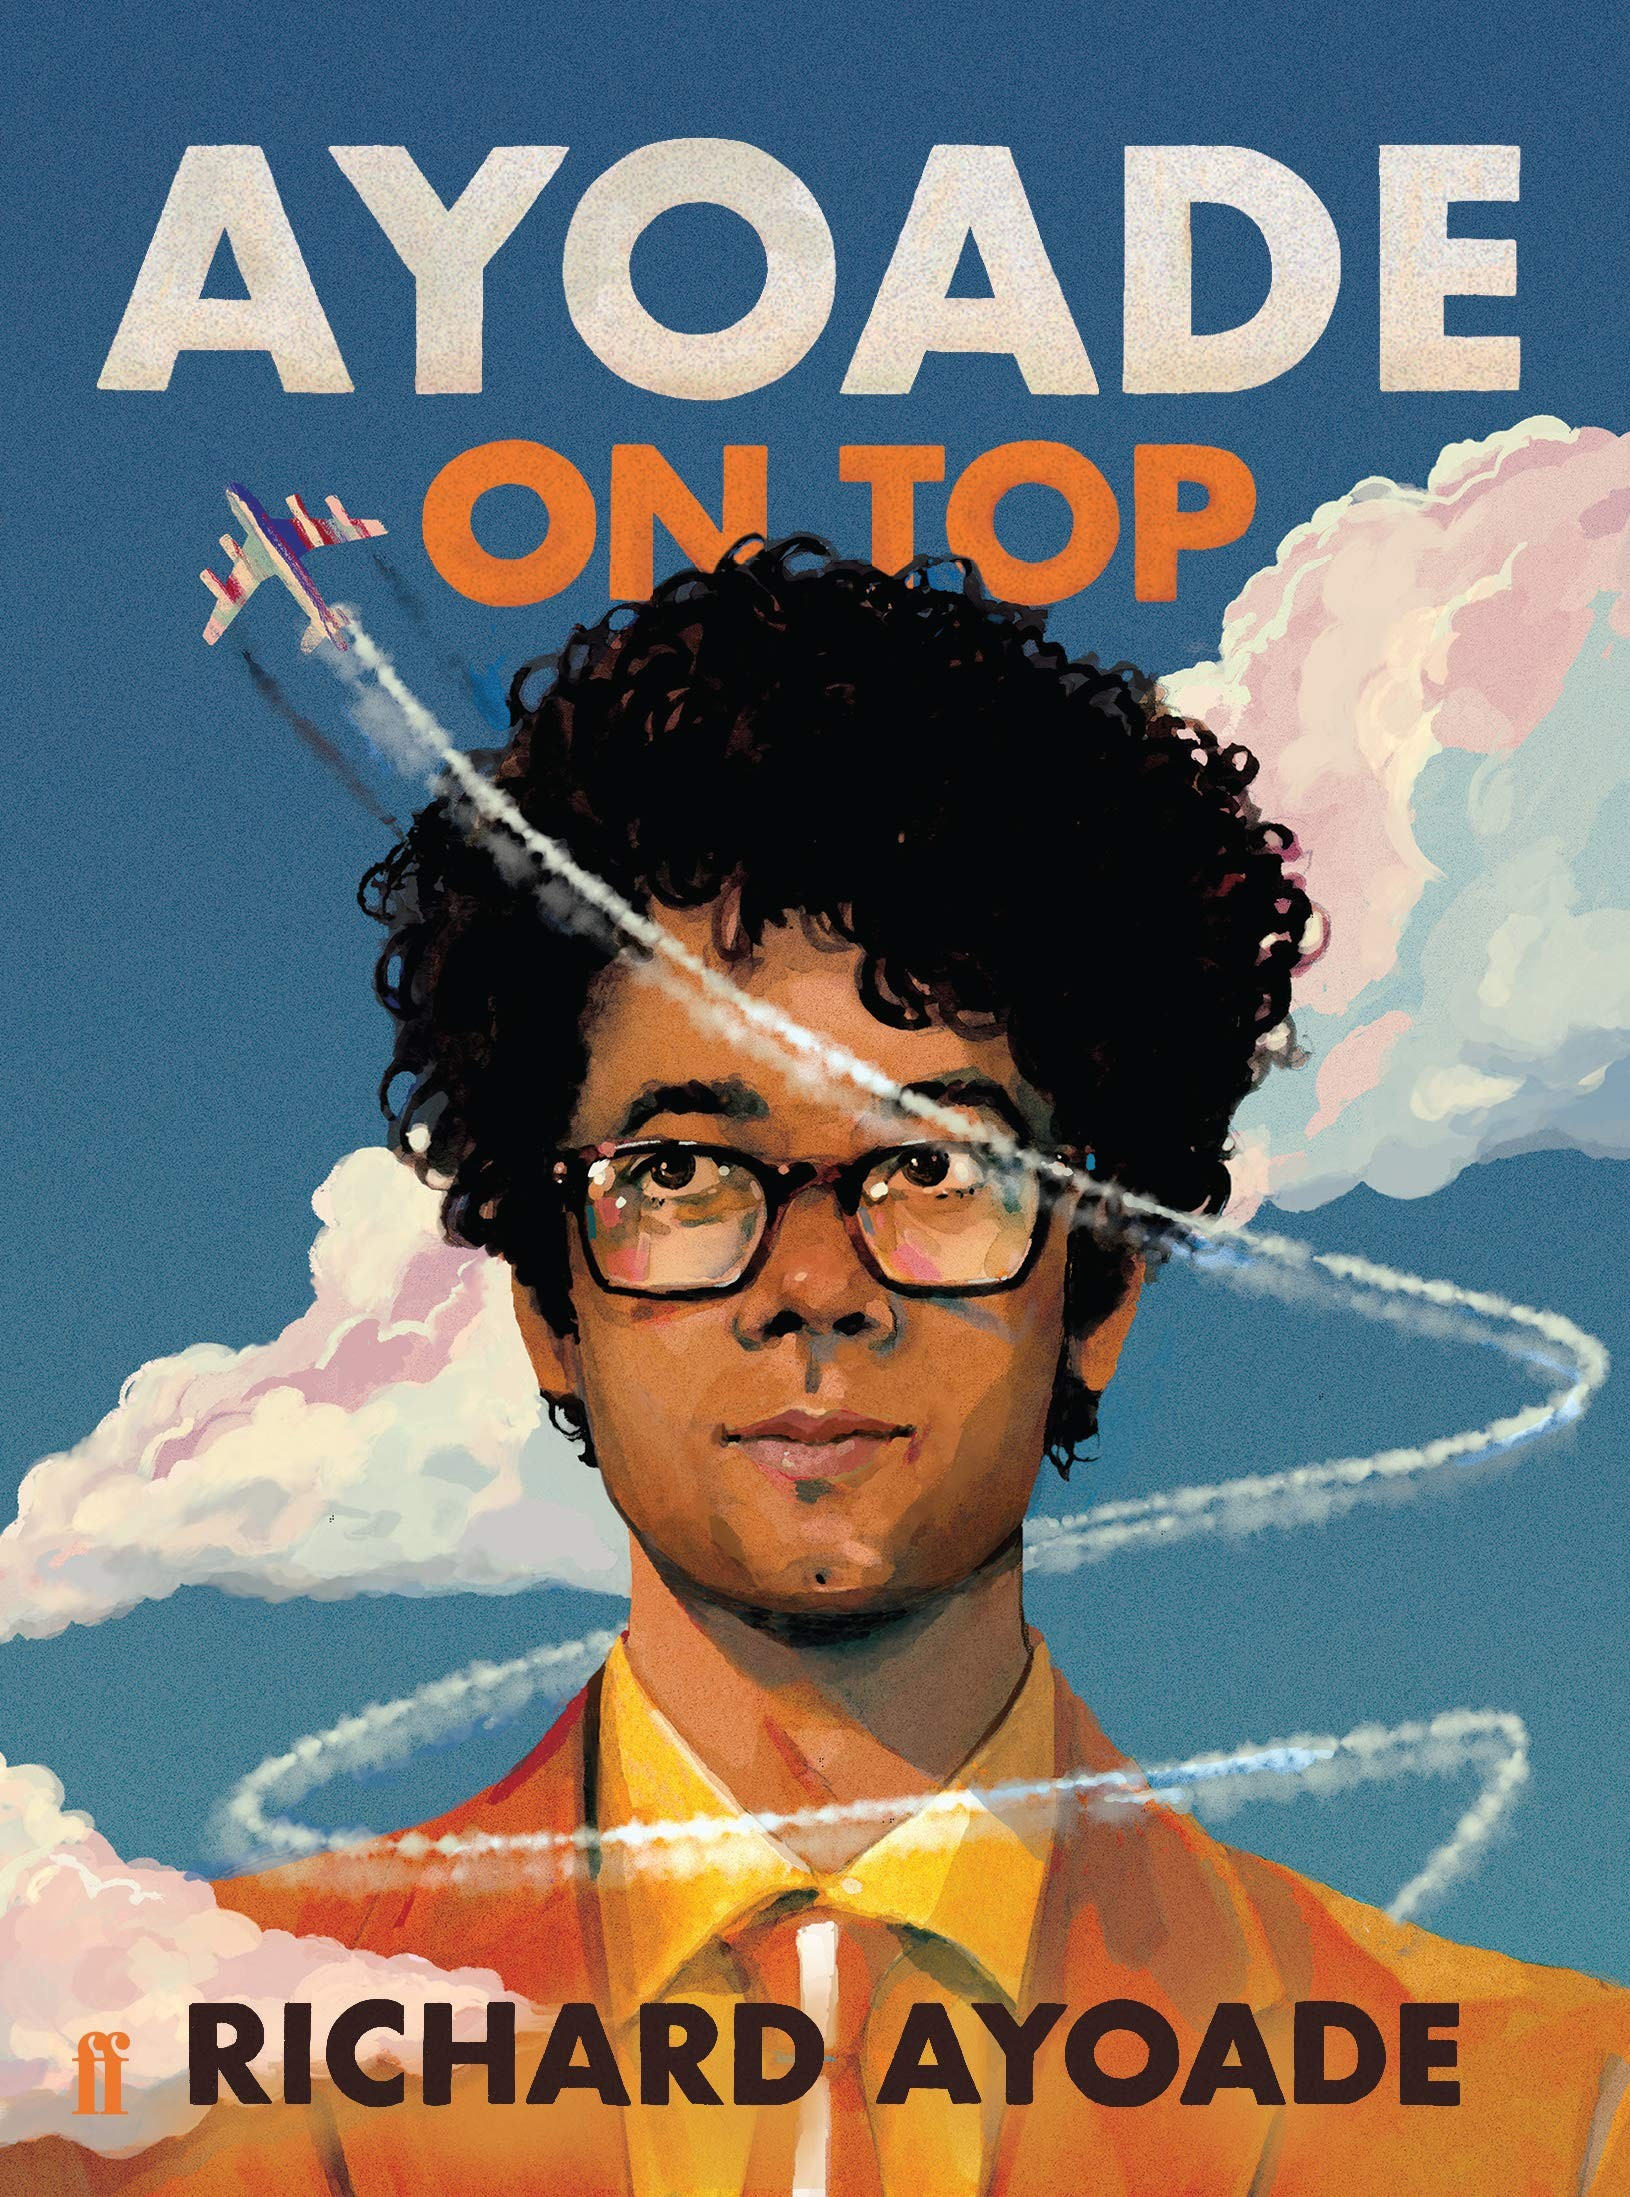 A VIEW FROM THE TOP [35mm] w/ RICHARD AYOADE  BOOK SIGNING + INTRO!